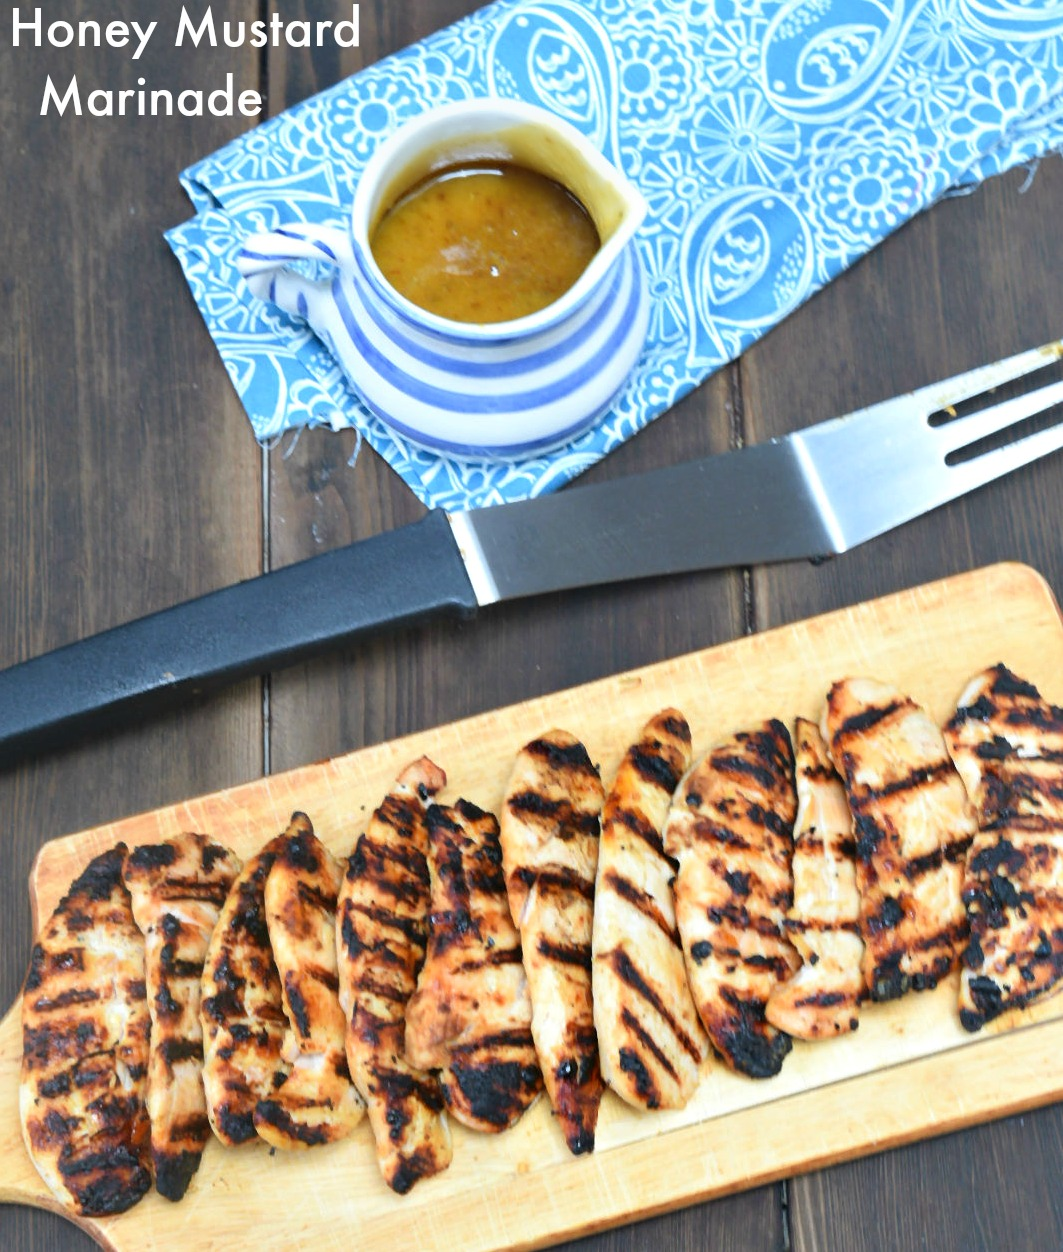 Honey Mustard Marinade with Grilled Chicken